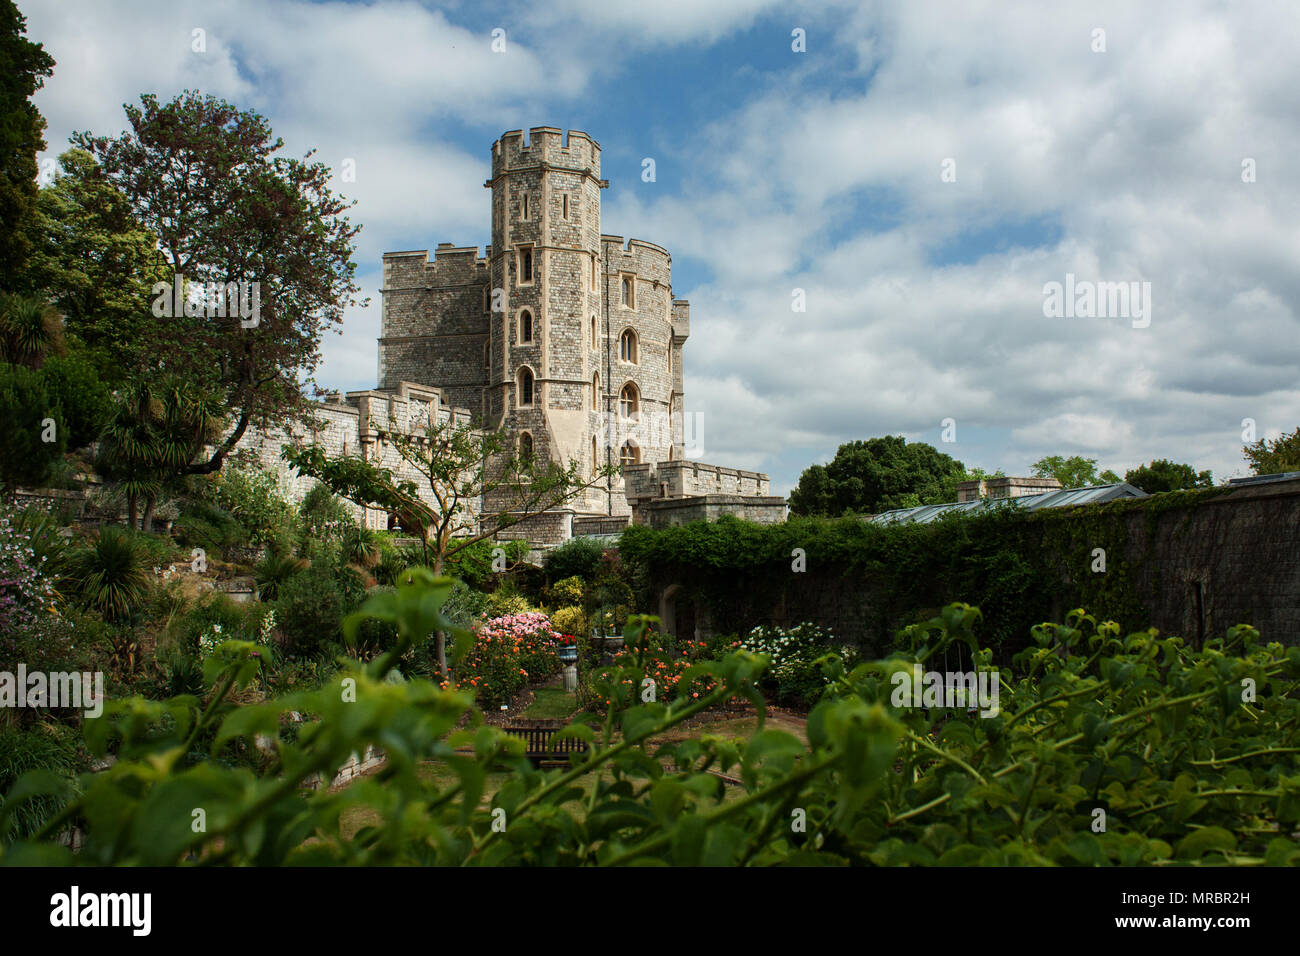 Windsor castle tower seen from the inner garden wall, England, UK - Stock Image